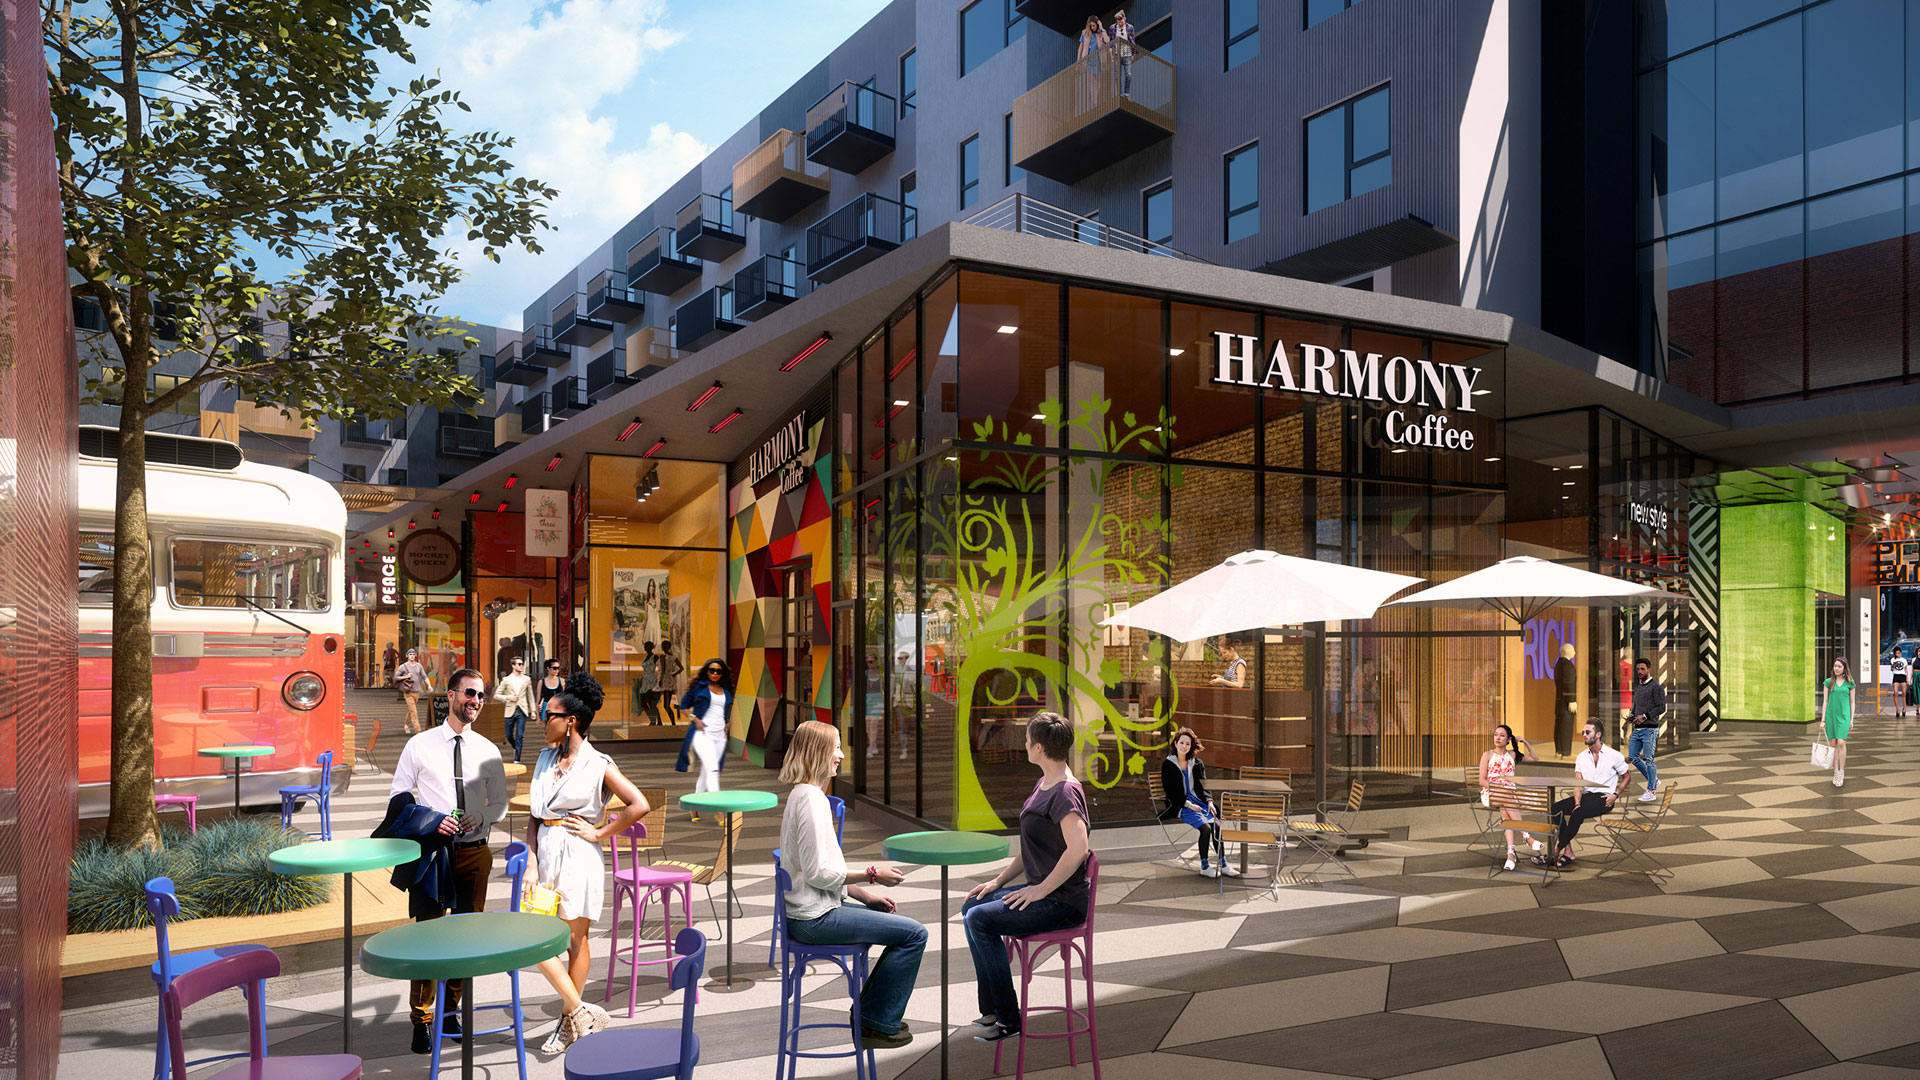 <p>The pedestrian arcade and paseo which bisects the site along both axes will offer a highly animated interior space intended to provide a wholly new experience to the downtown Denver retail scene.</p>